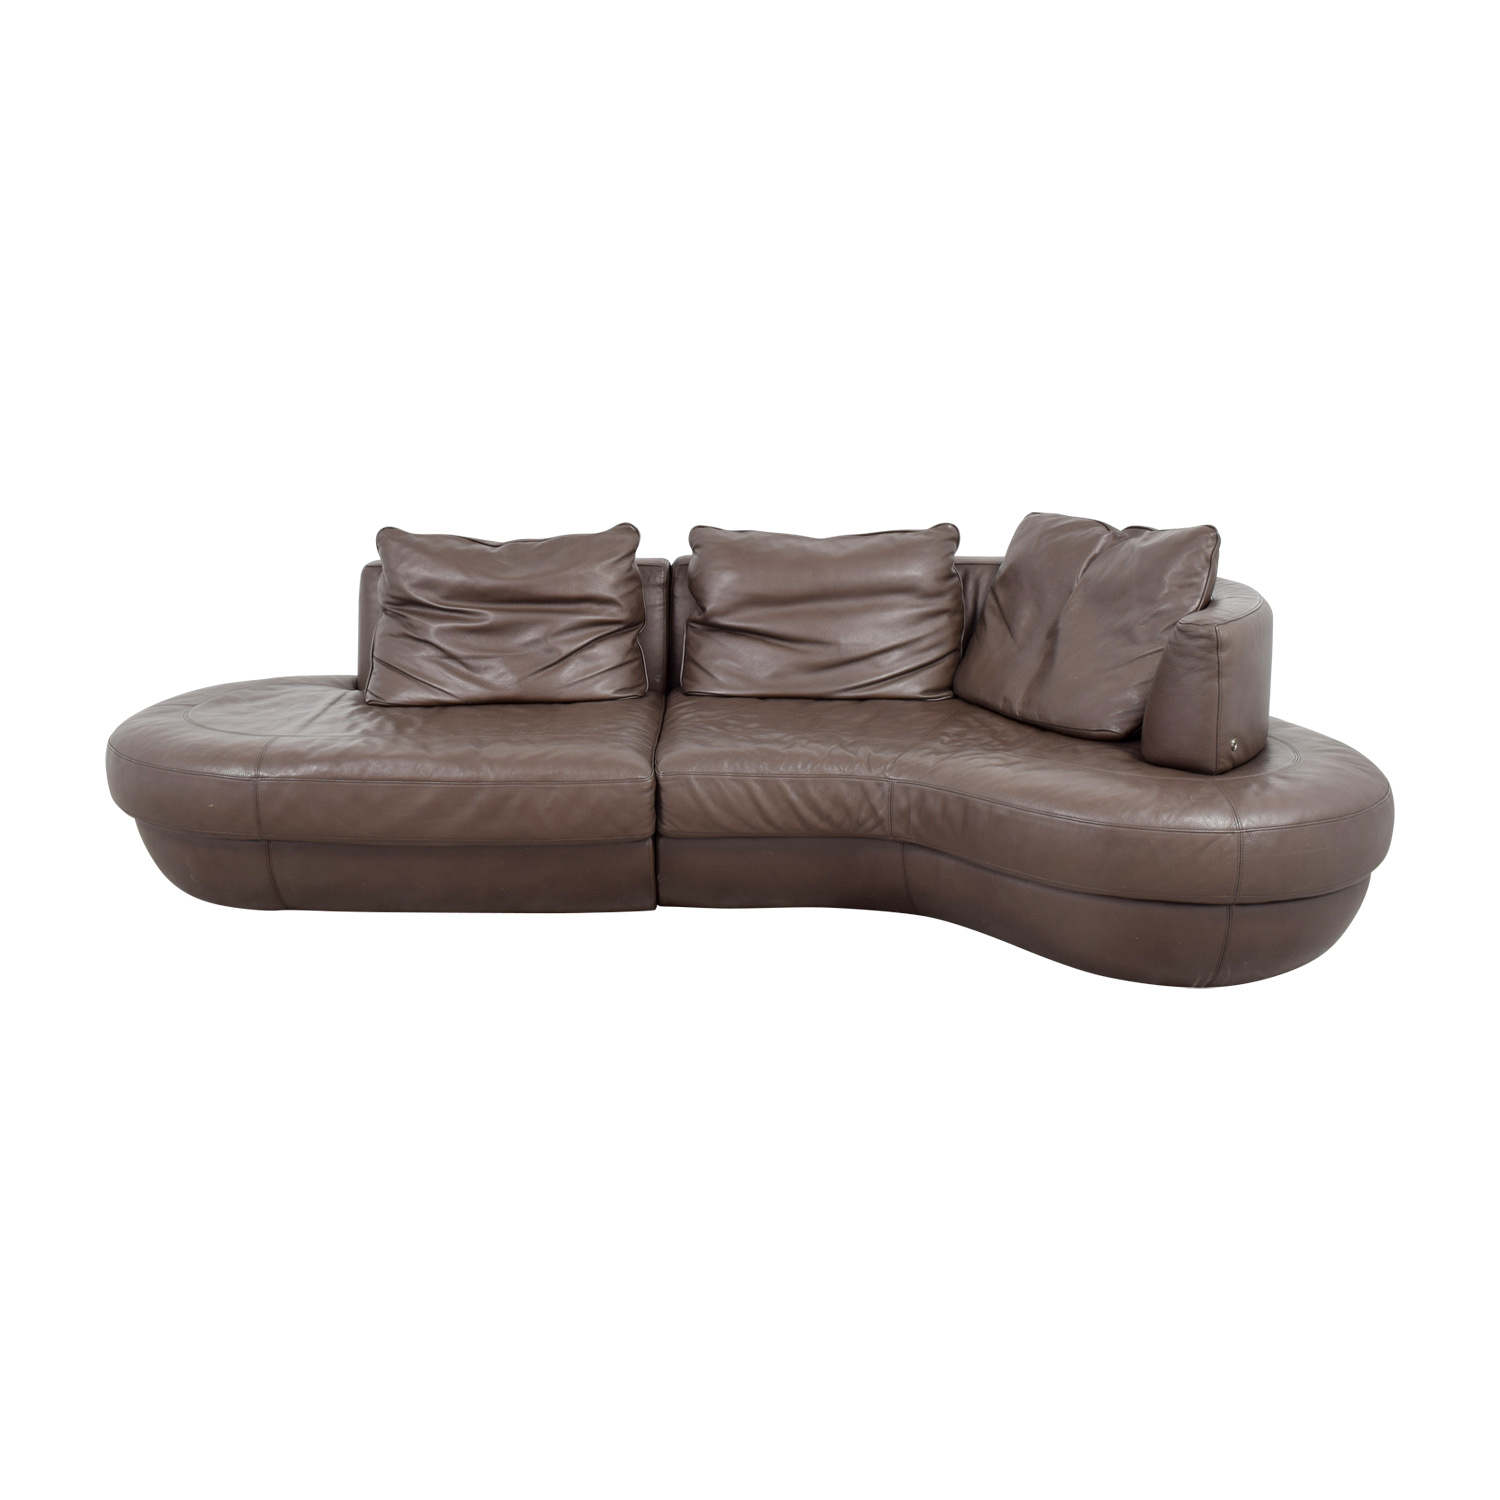 Natuzzi Sofa For Sale Dubai Sectionals Used Sectionals For Sale